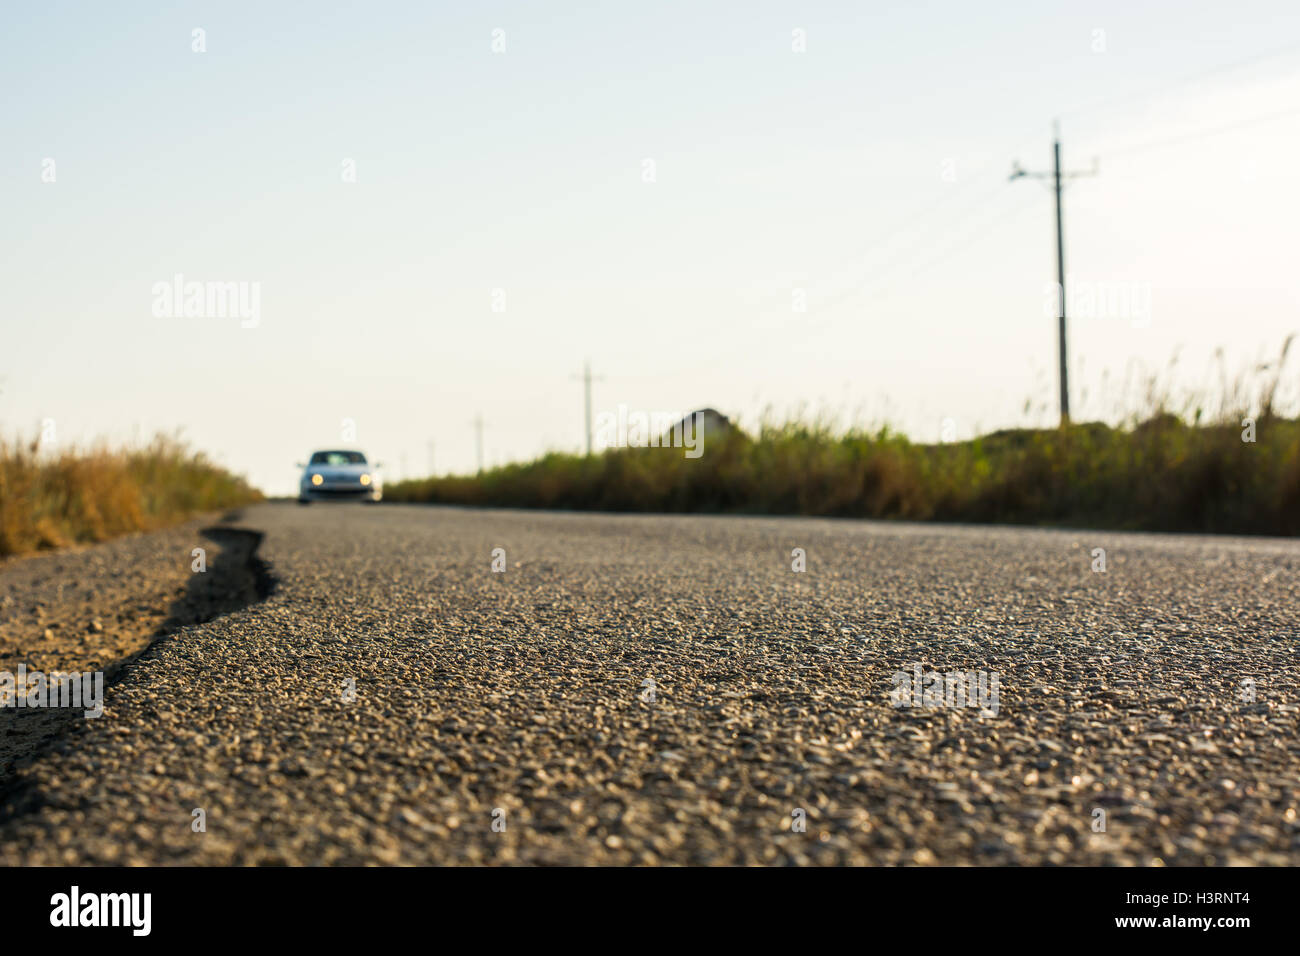 Detail of the asphalt of a country road while a car aproaches. - Stock Image